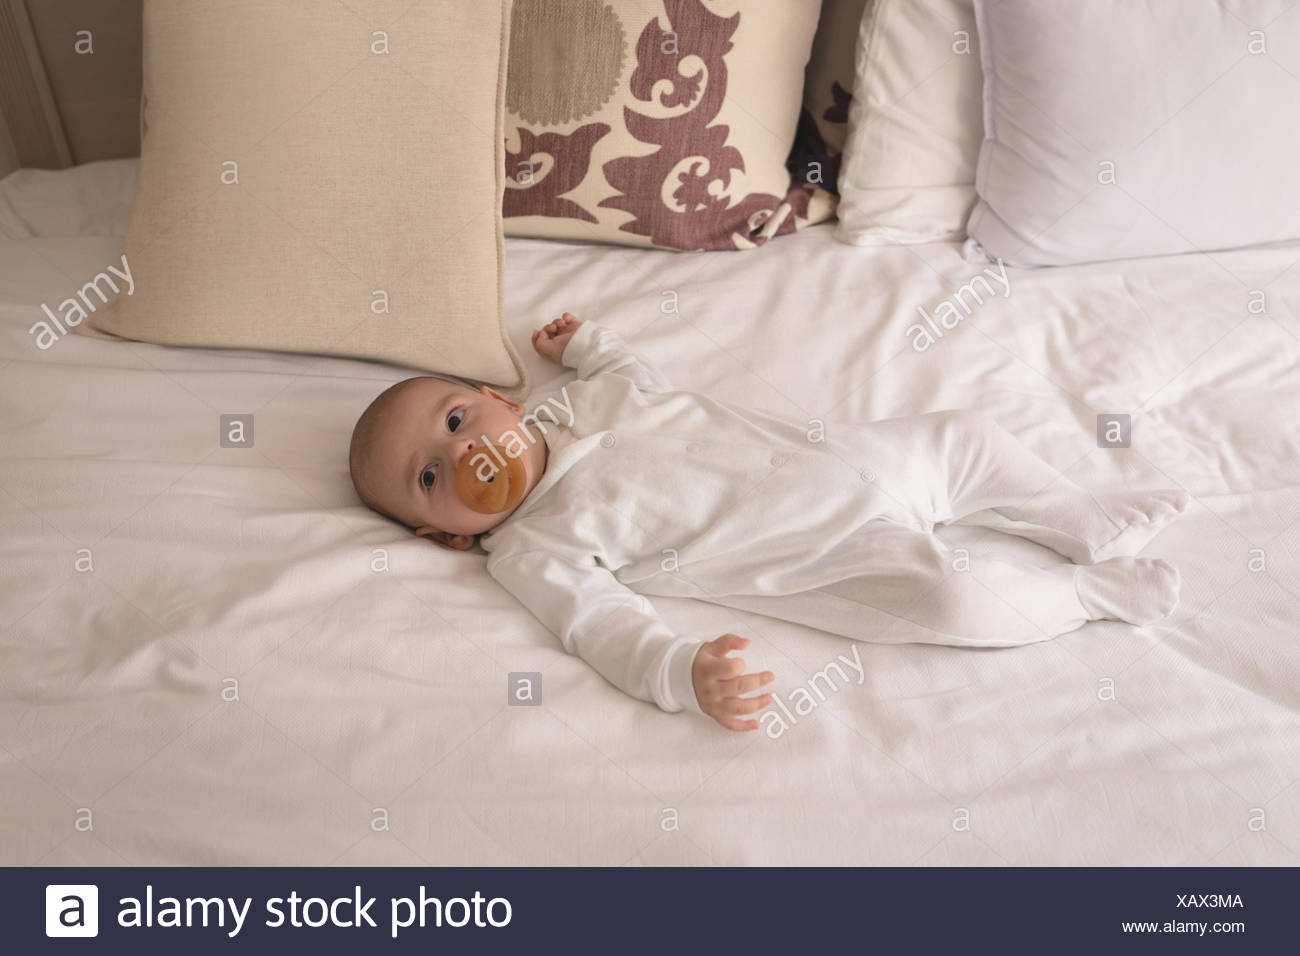 Cute little baby with pacifier in mouth sleeping on bed Stock Photo